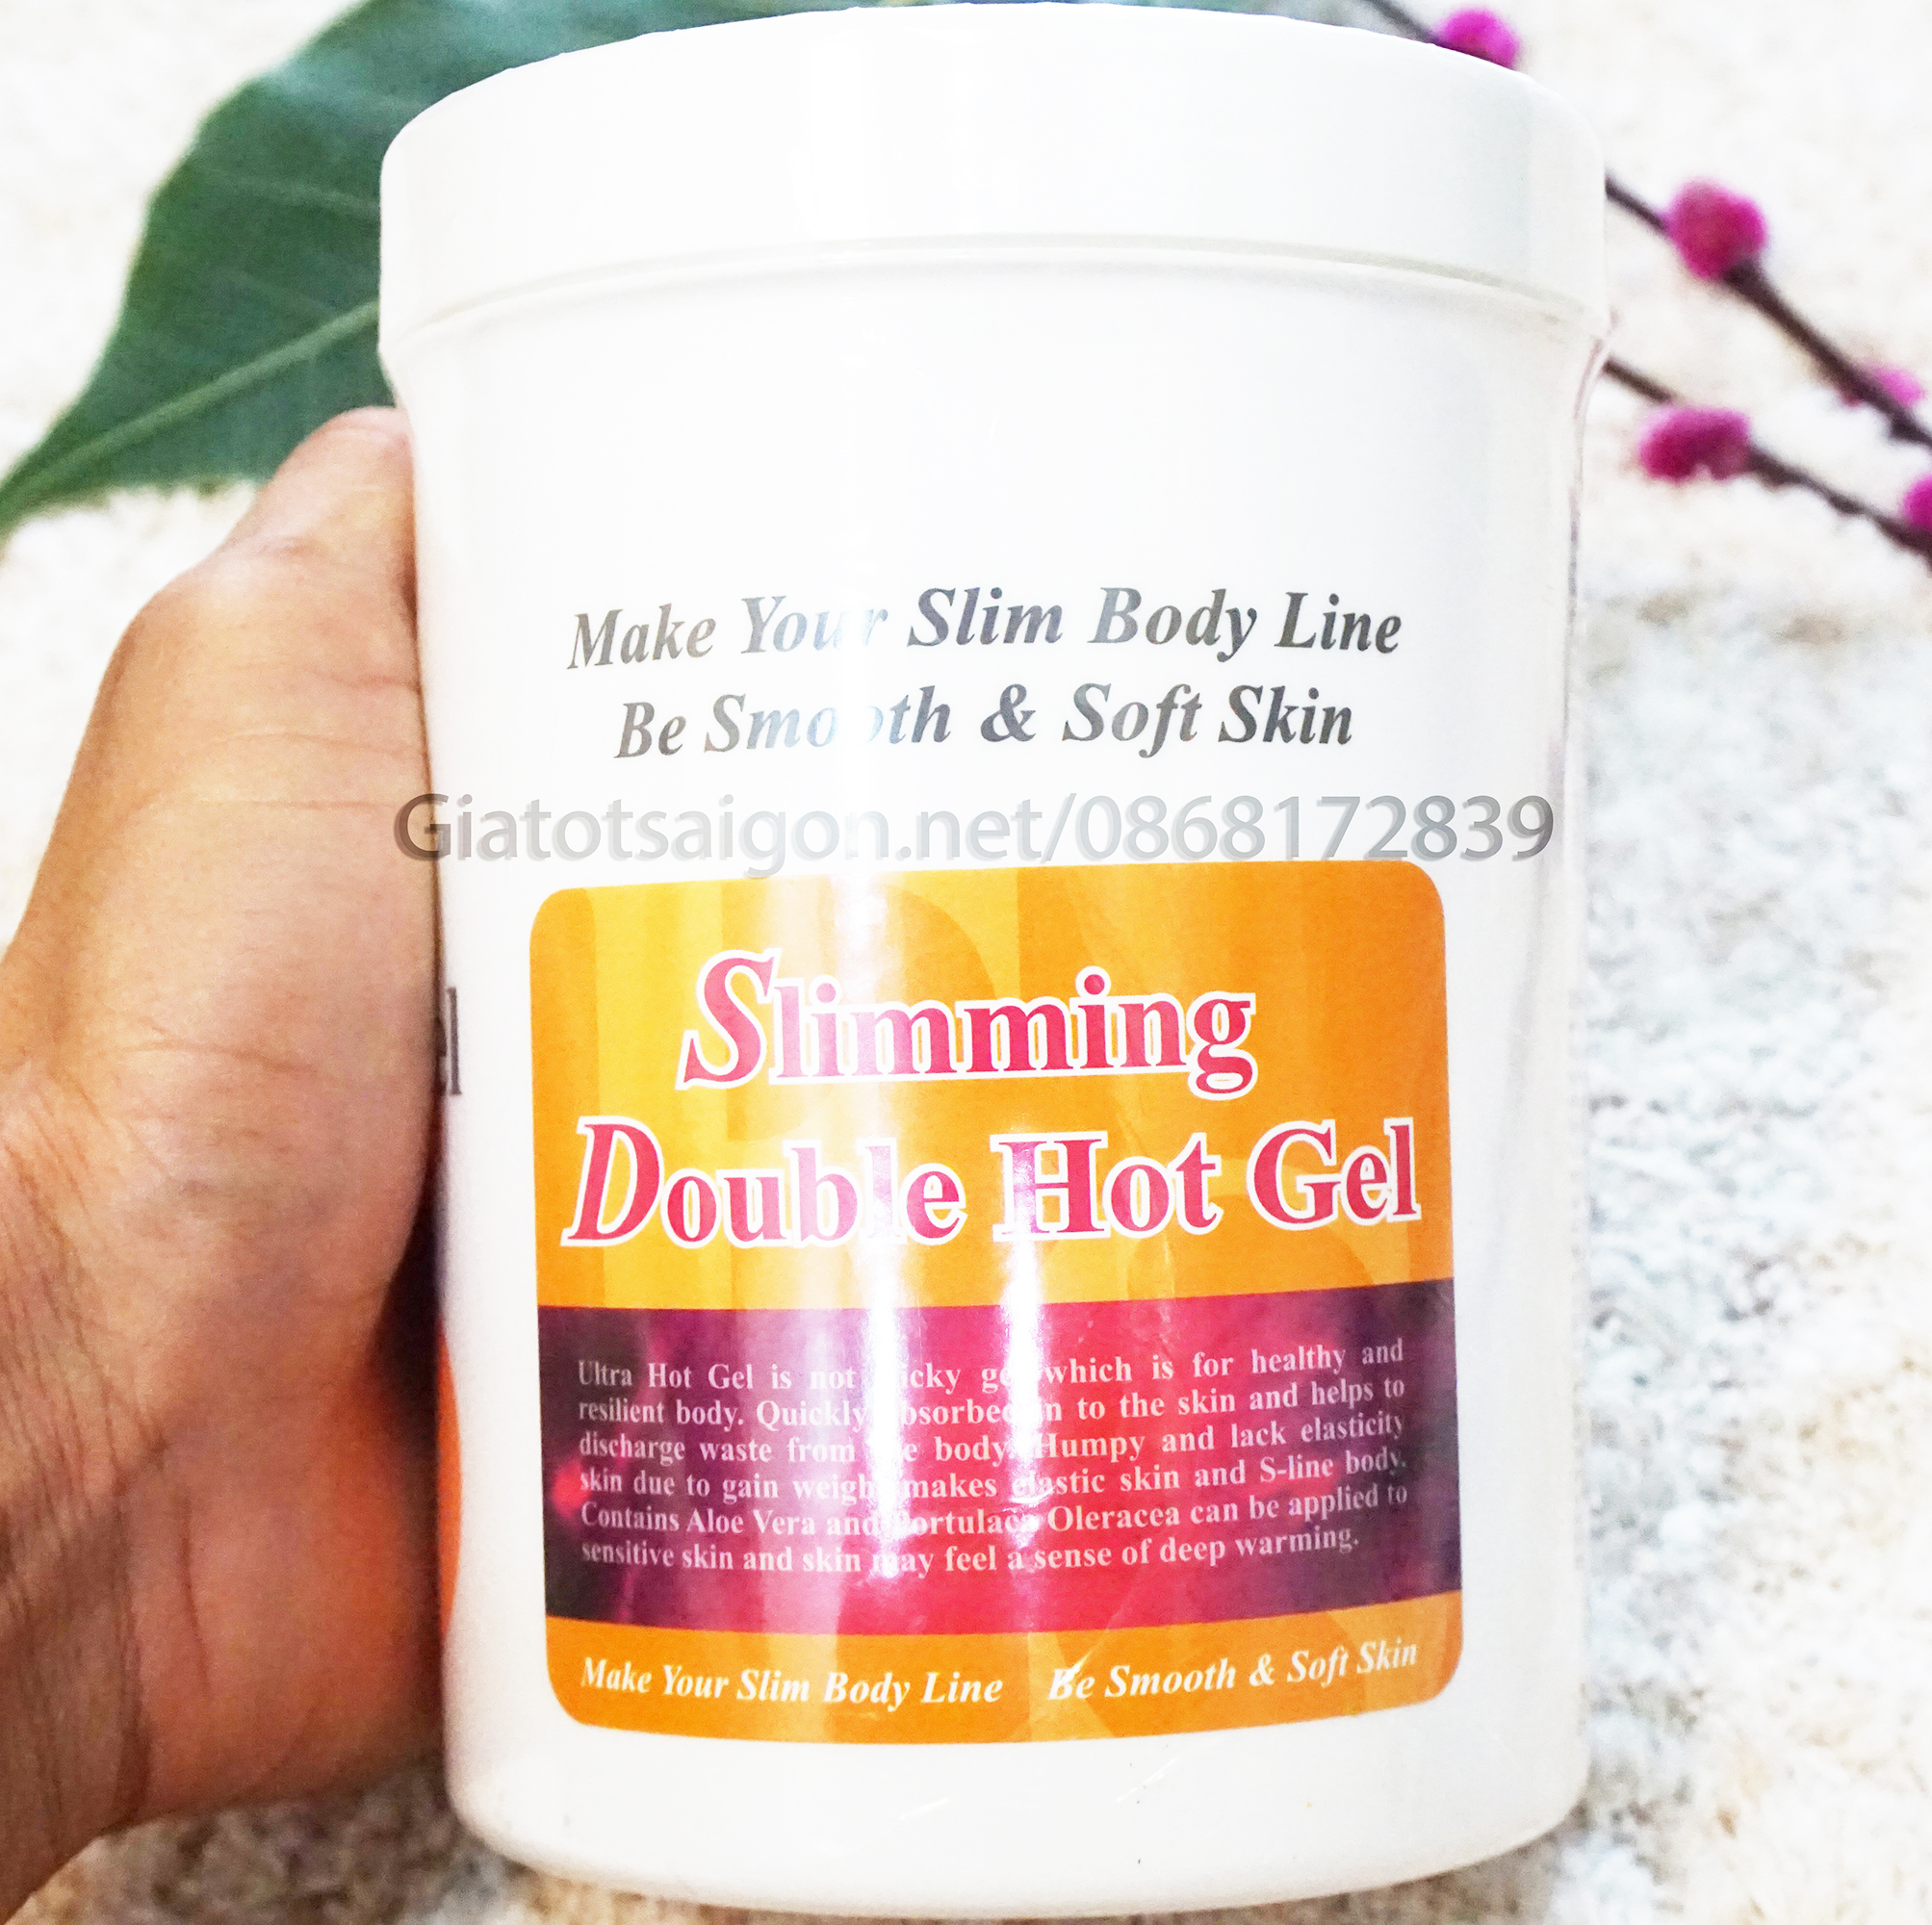 Gel nóng giảm béo Slimming Double Hot Gel.